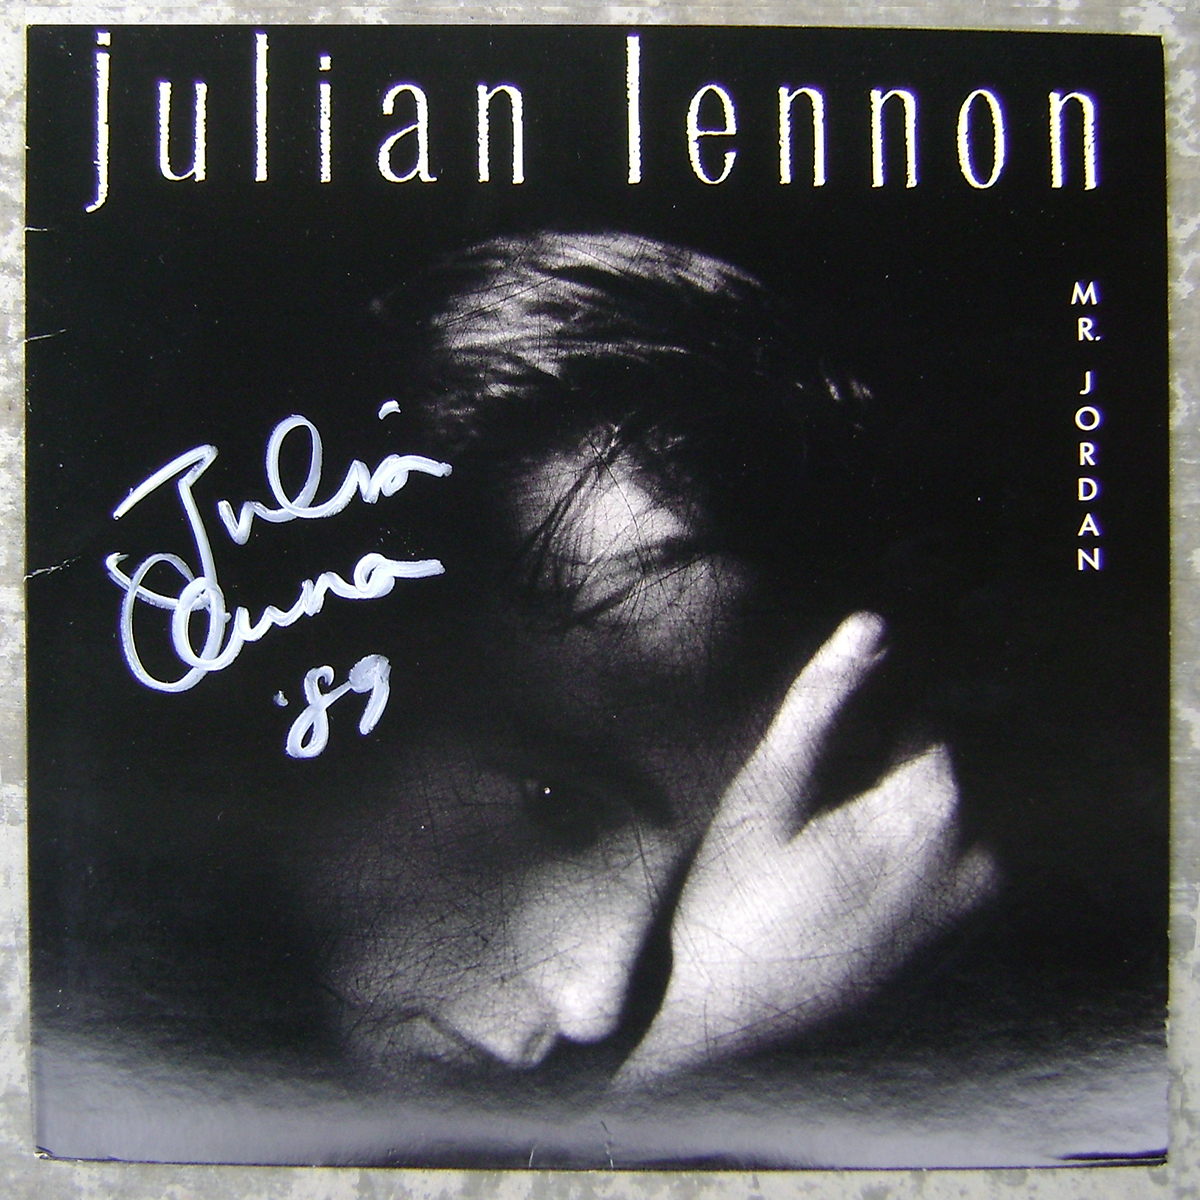 LP - Julian Lennon - Mr. Jordan